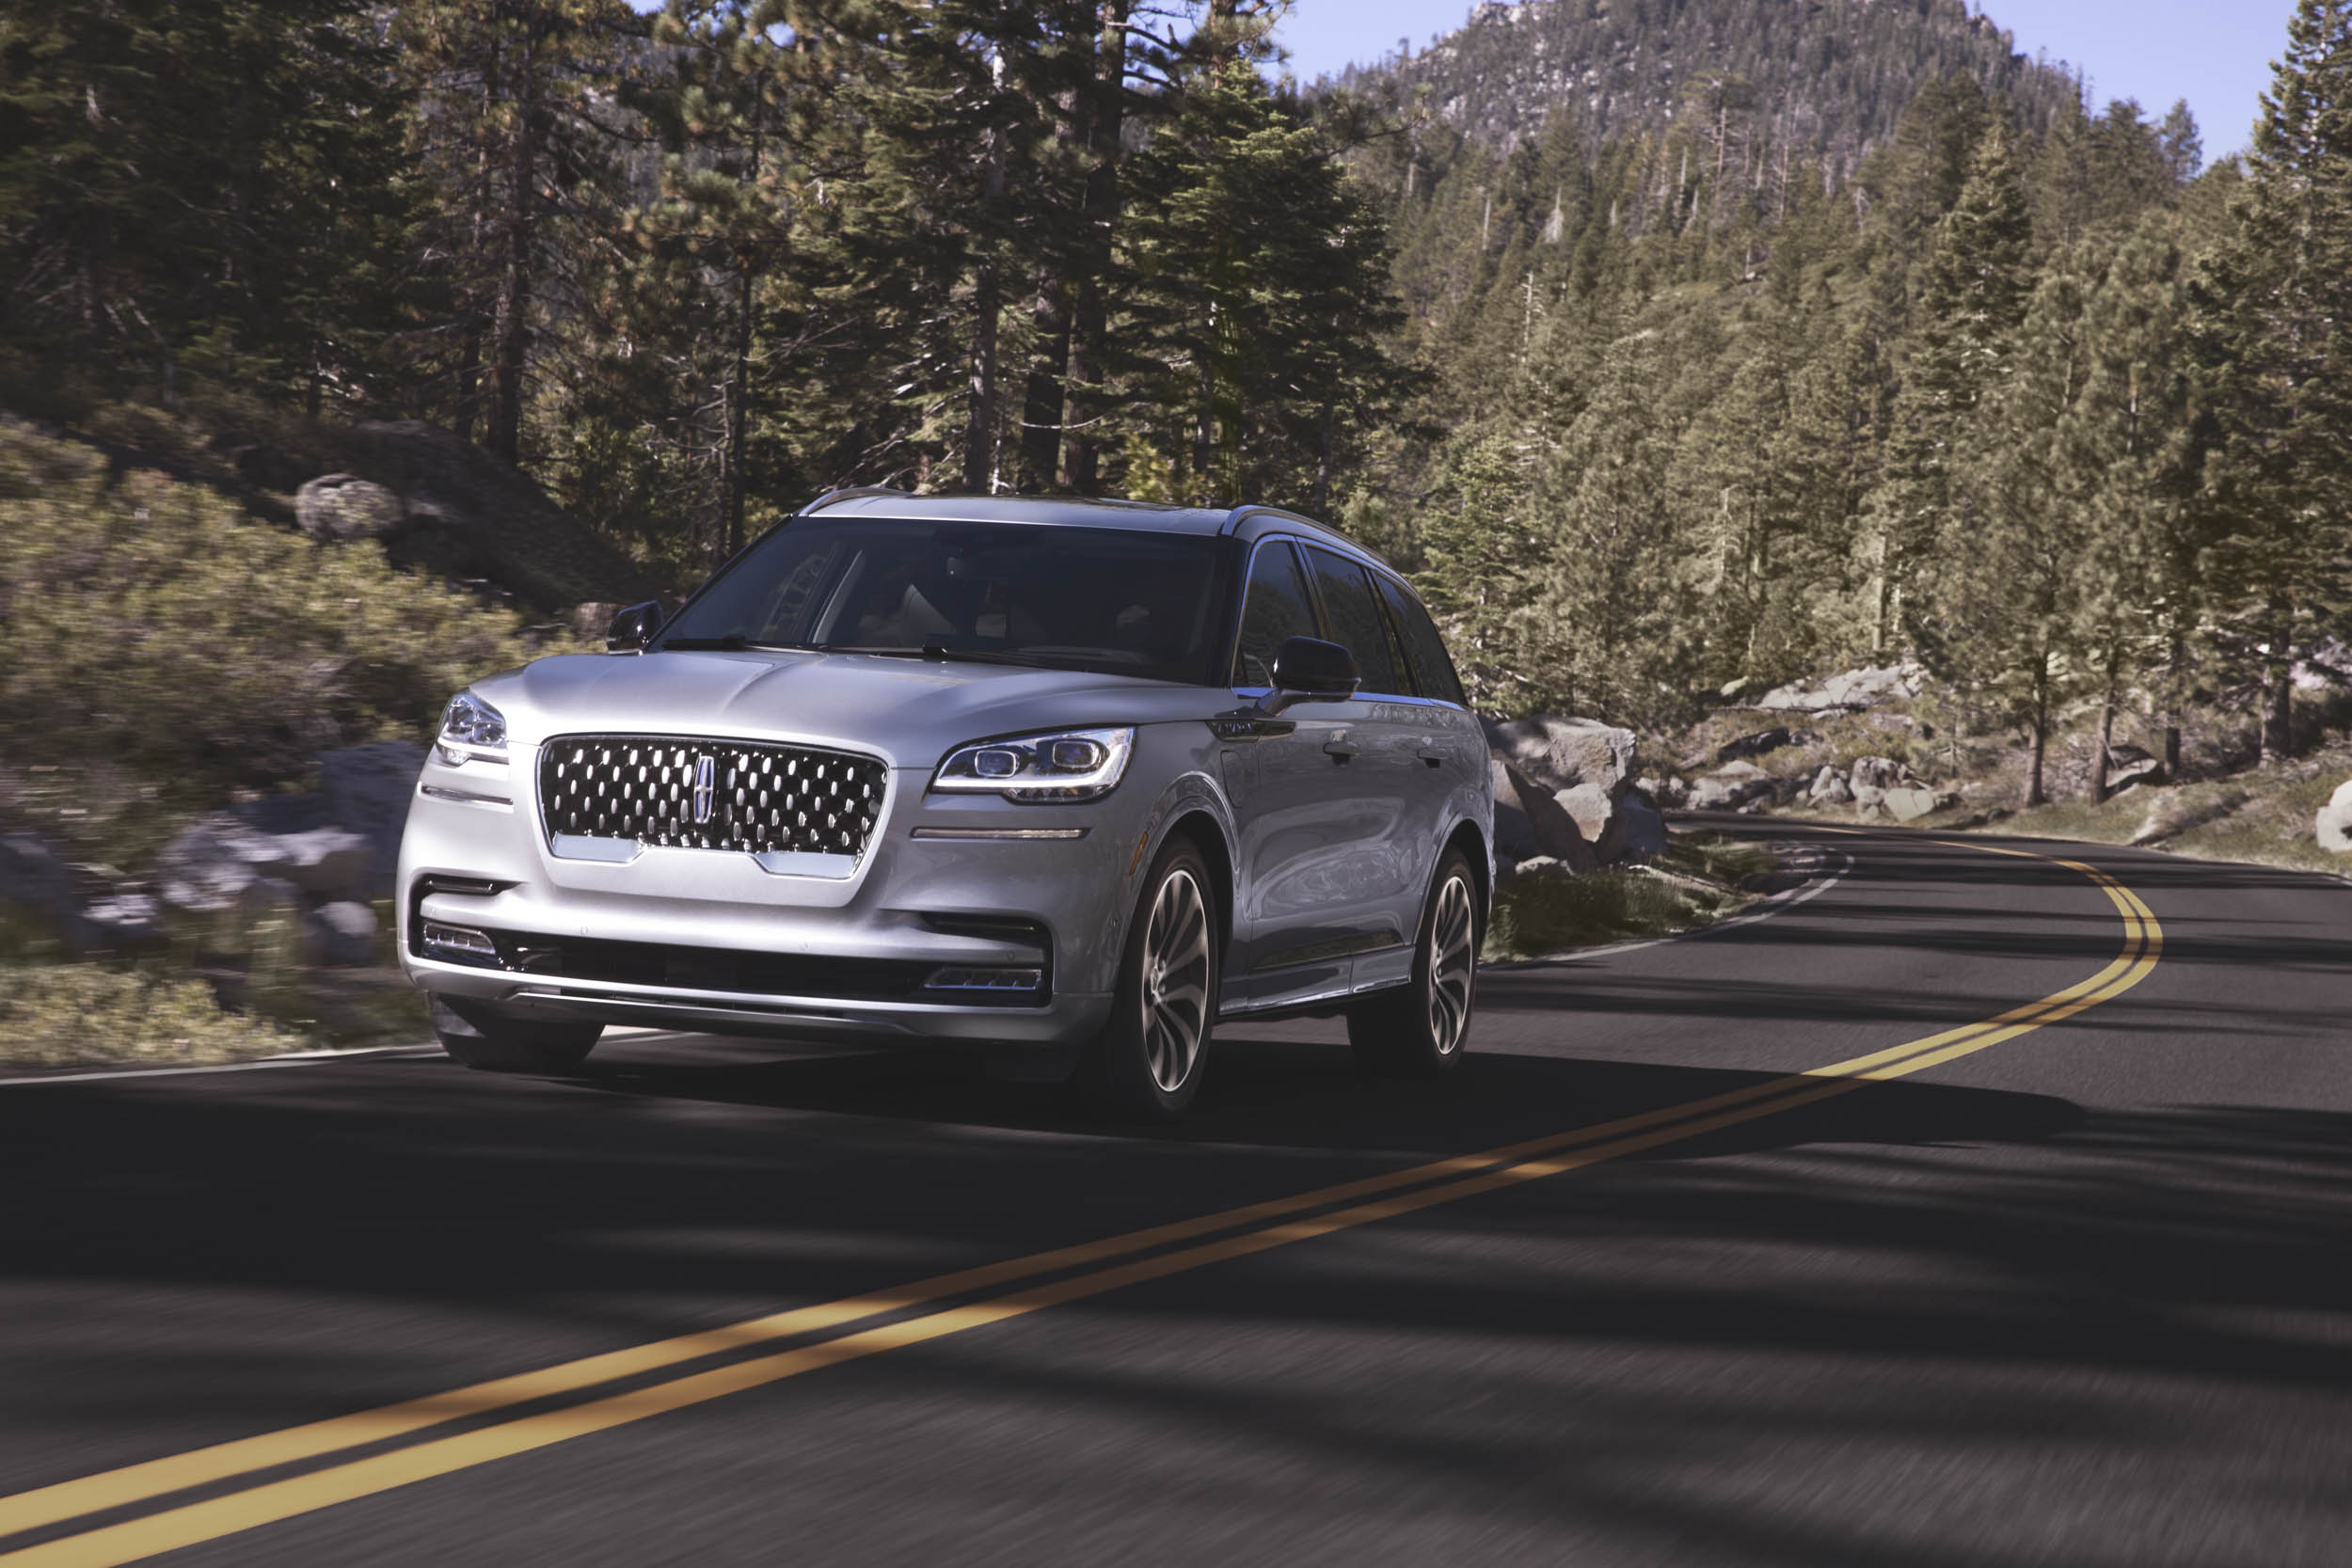 2020 Lincoln Aviator driving